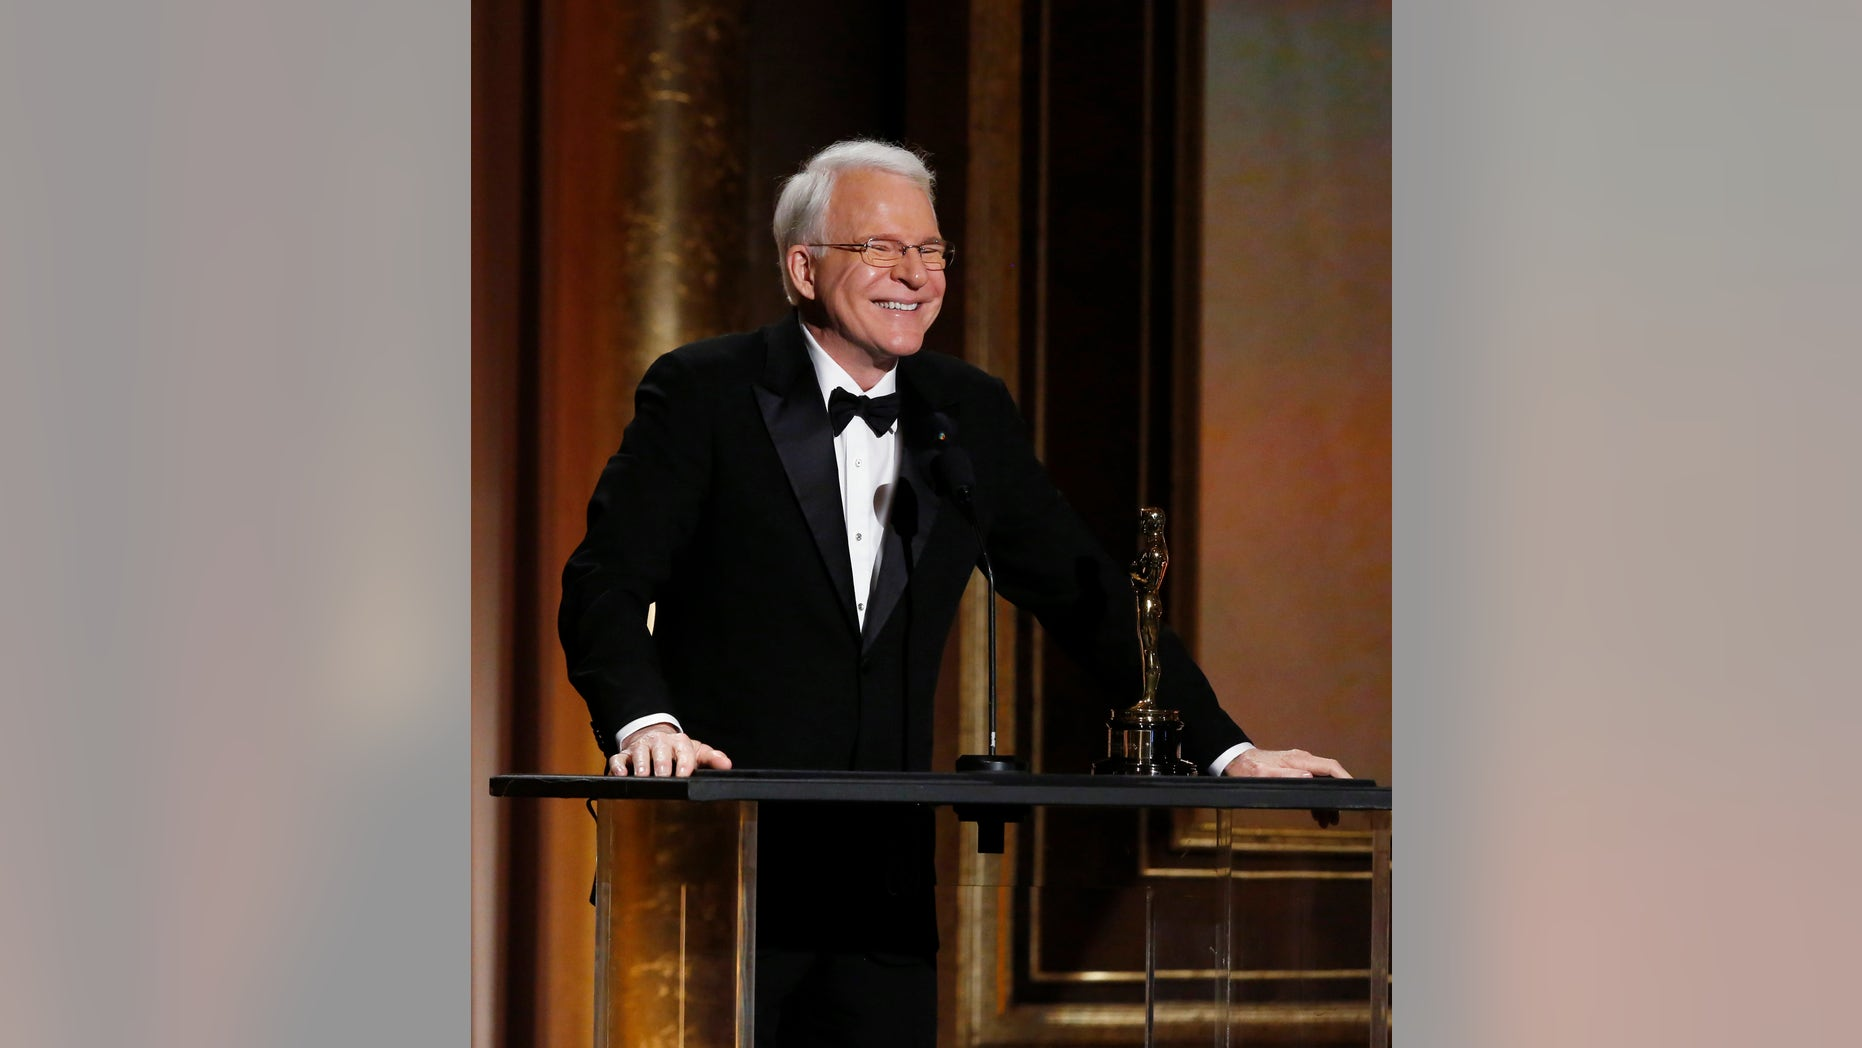 November 16, 2013. Actor Steve Martin smiles as he accepts an Honorary Award at the 5th Annual Academy of Motion Picture Arts and Sciences Governors Awards at The Ray Dolby Ballroom in Hollywood, California.